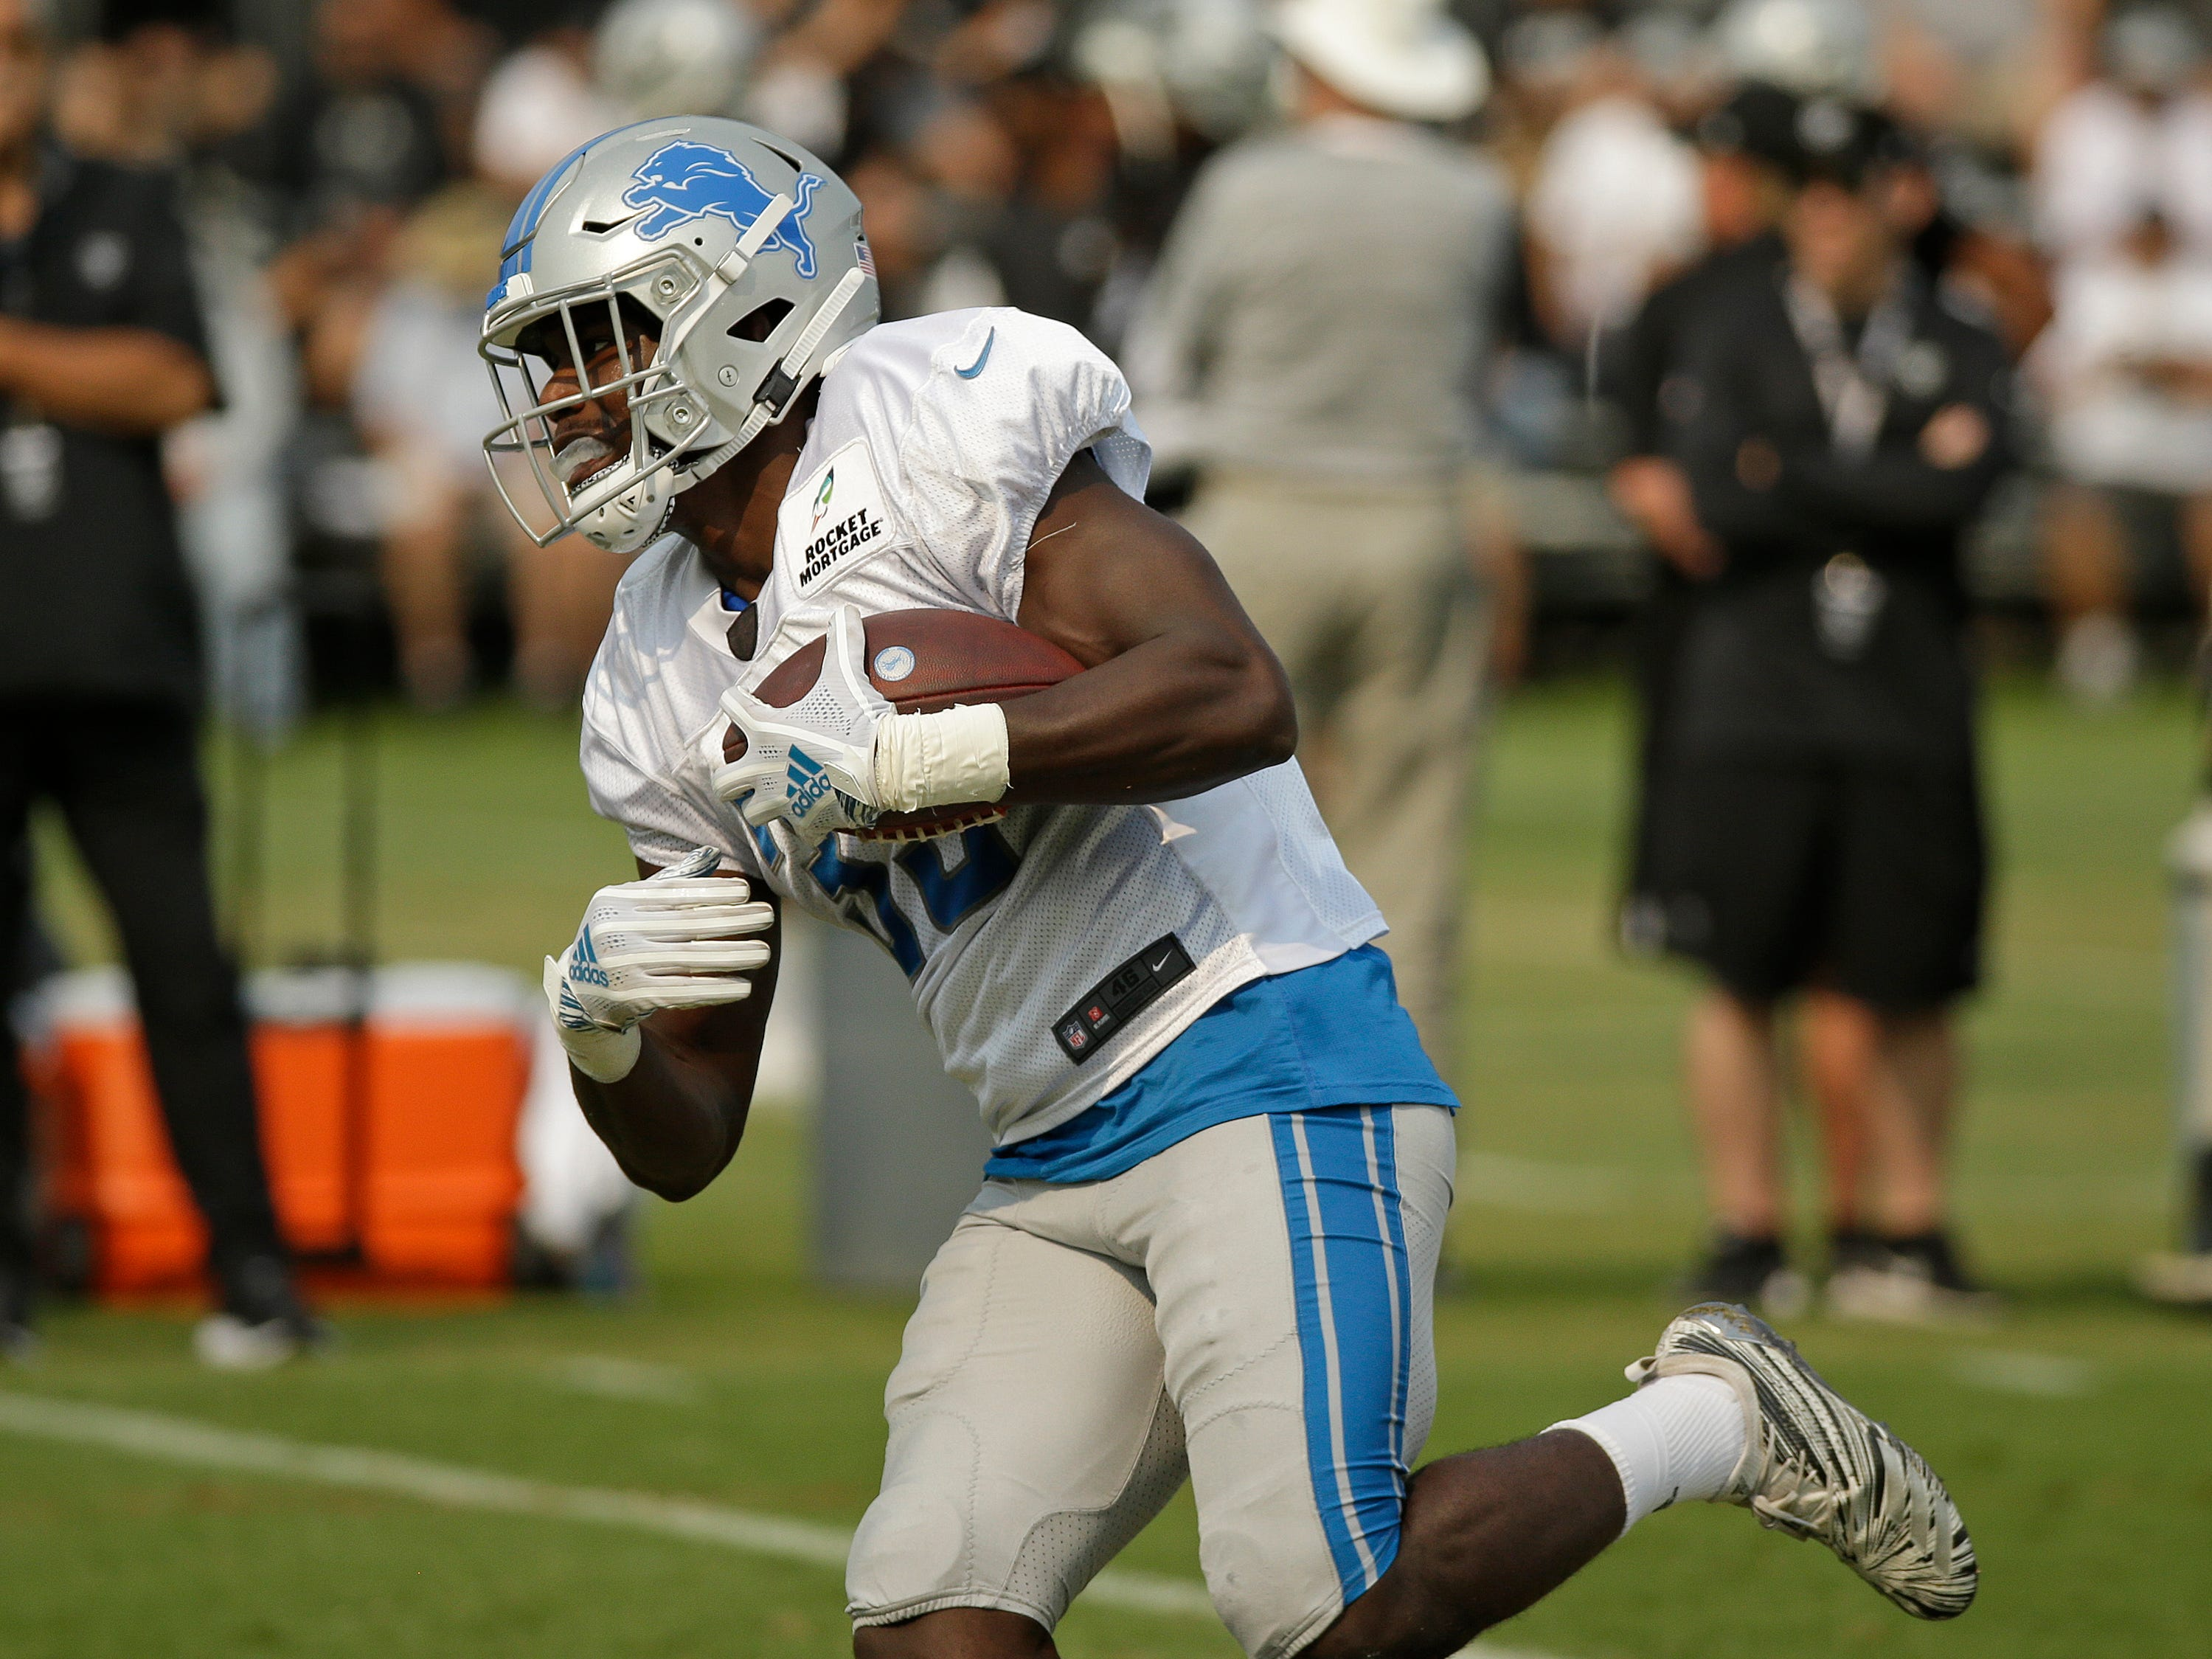 Lions running back Kerryon Johnson carries the ball.